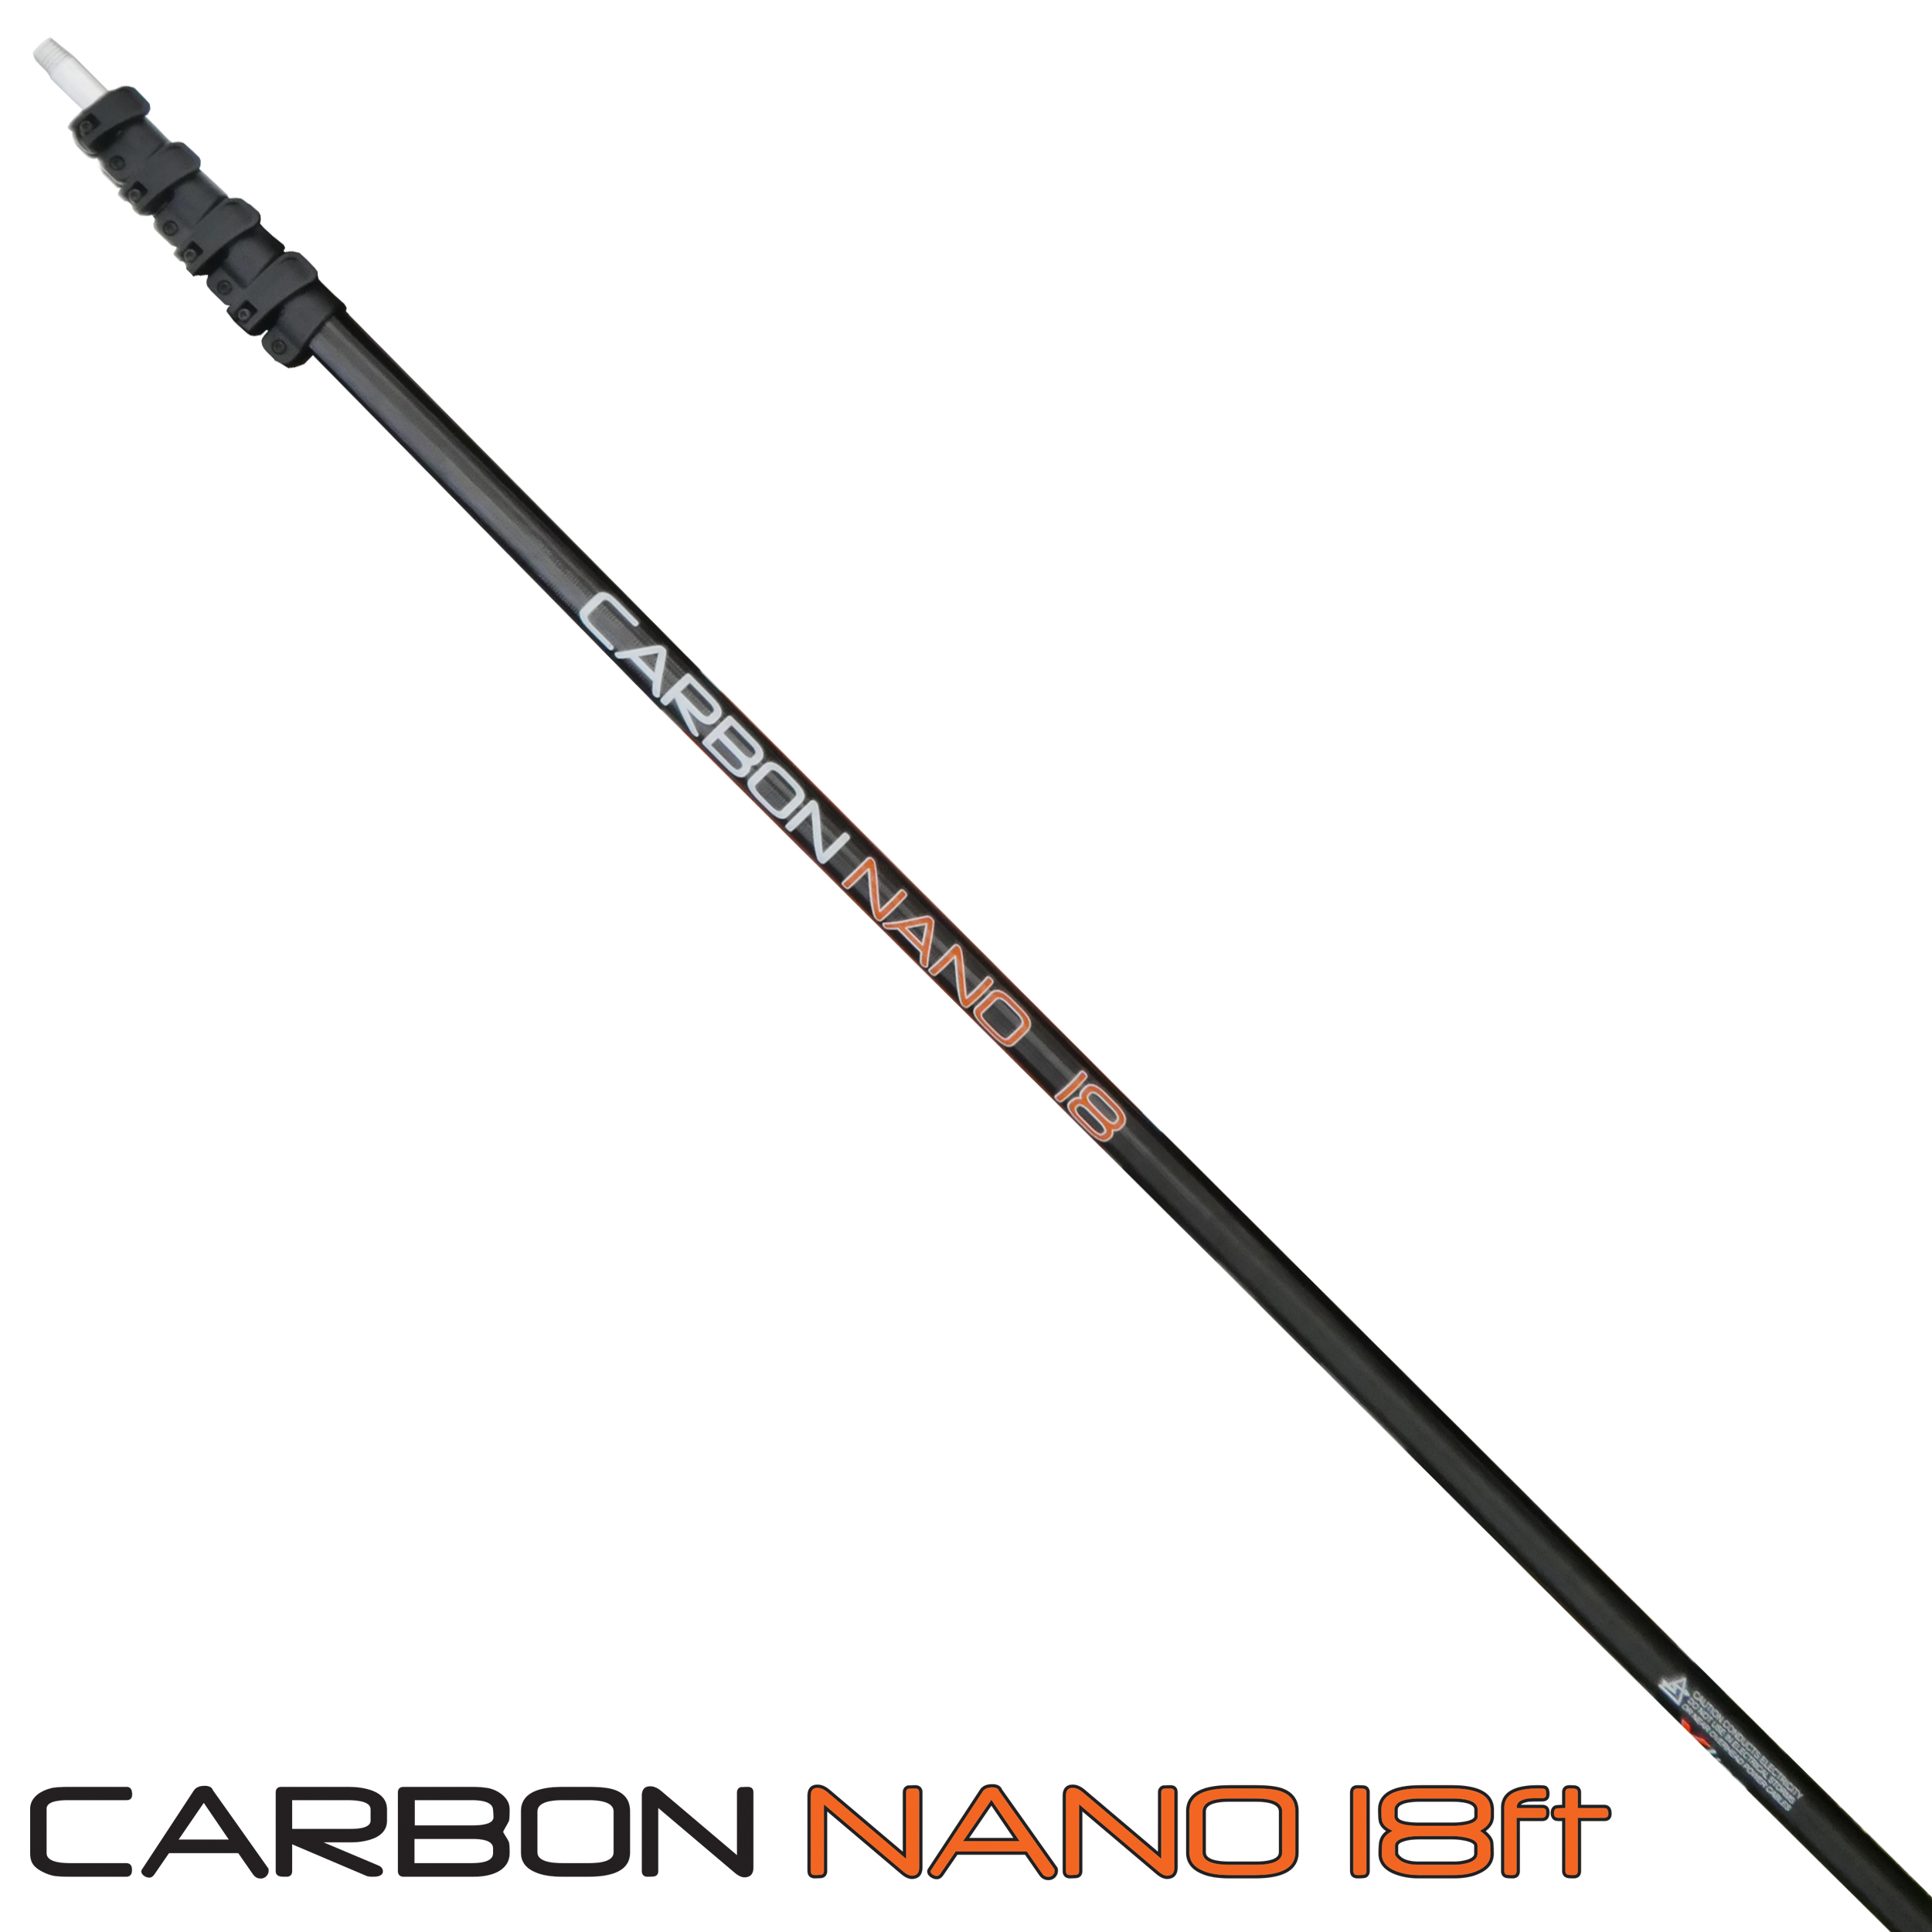 18ft Carbon Nano Water Fed Pole